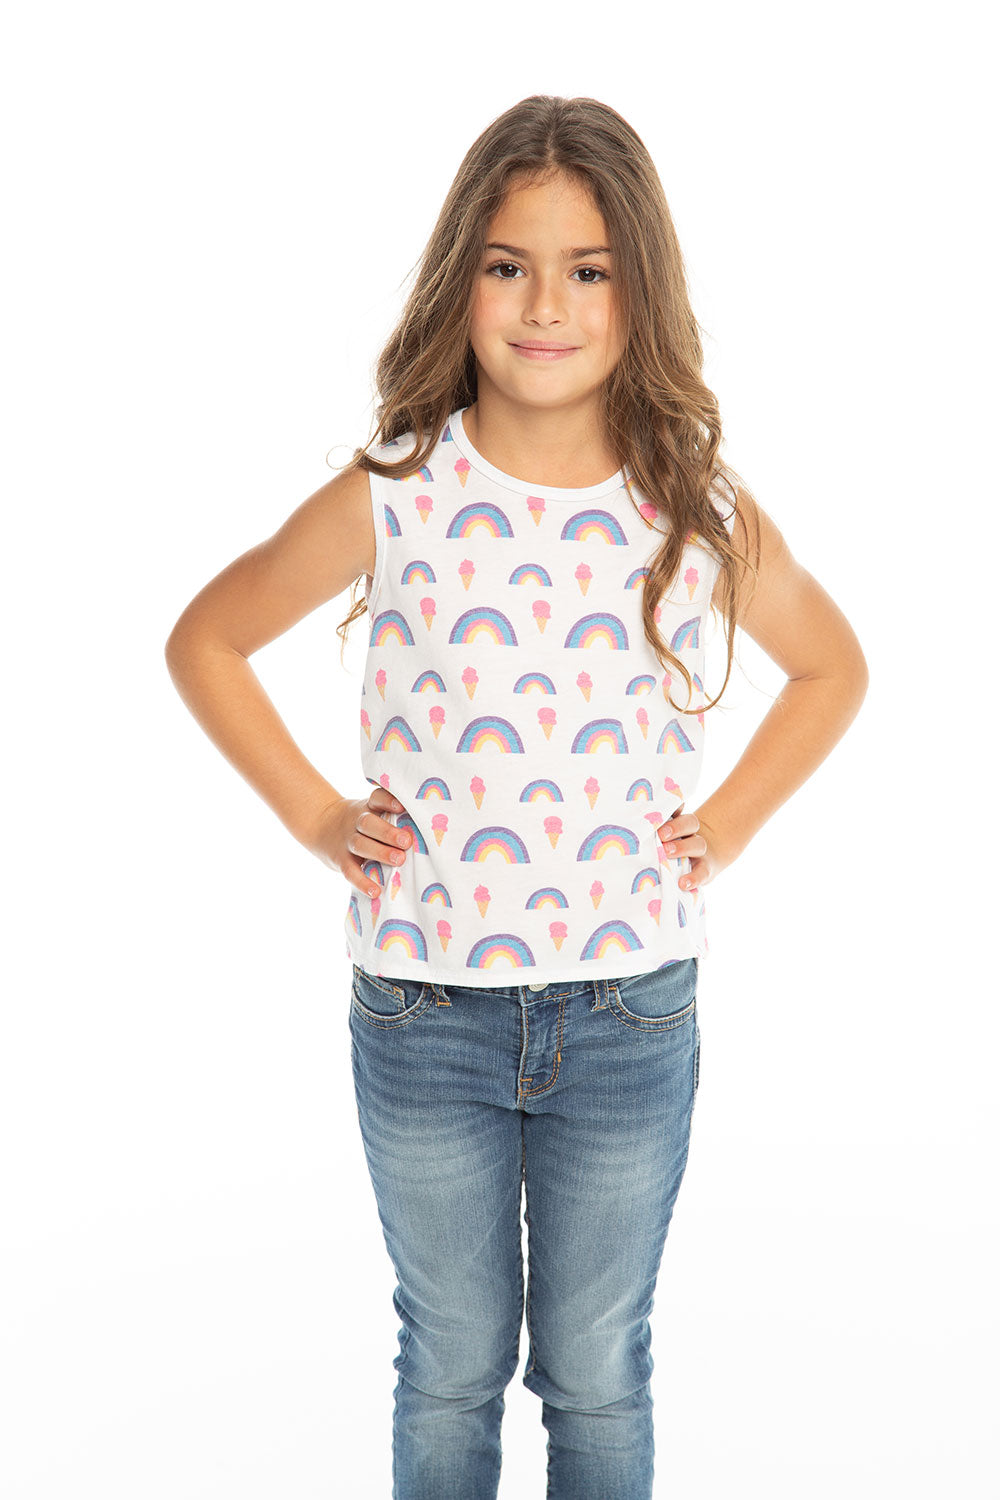 632606b9b Rainbow Ice Cream, Girls, chaserbrand.com,chaser clothing,chaser apparel,